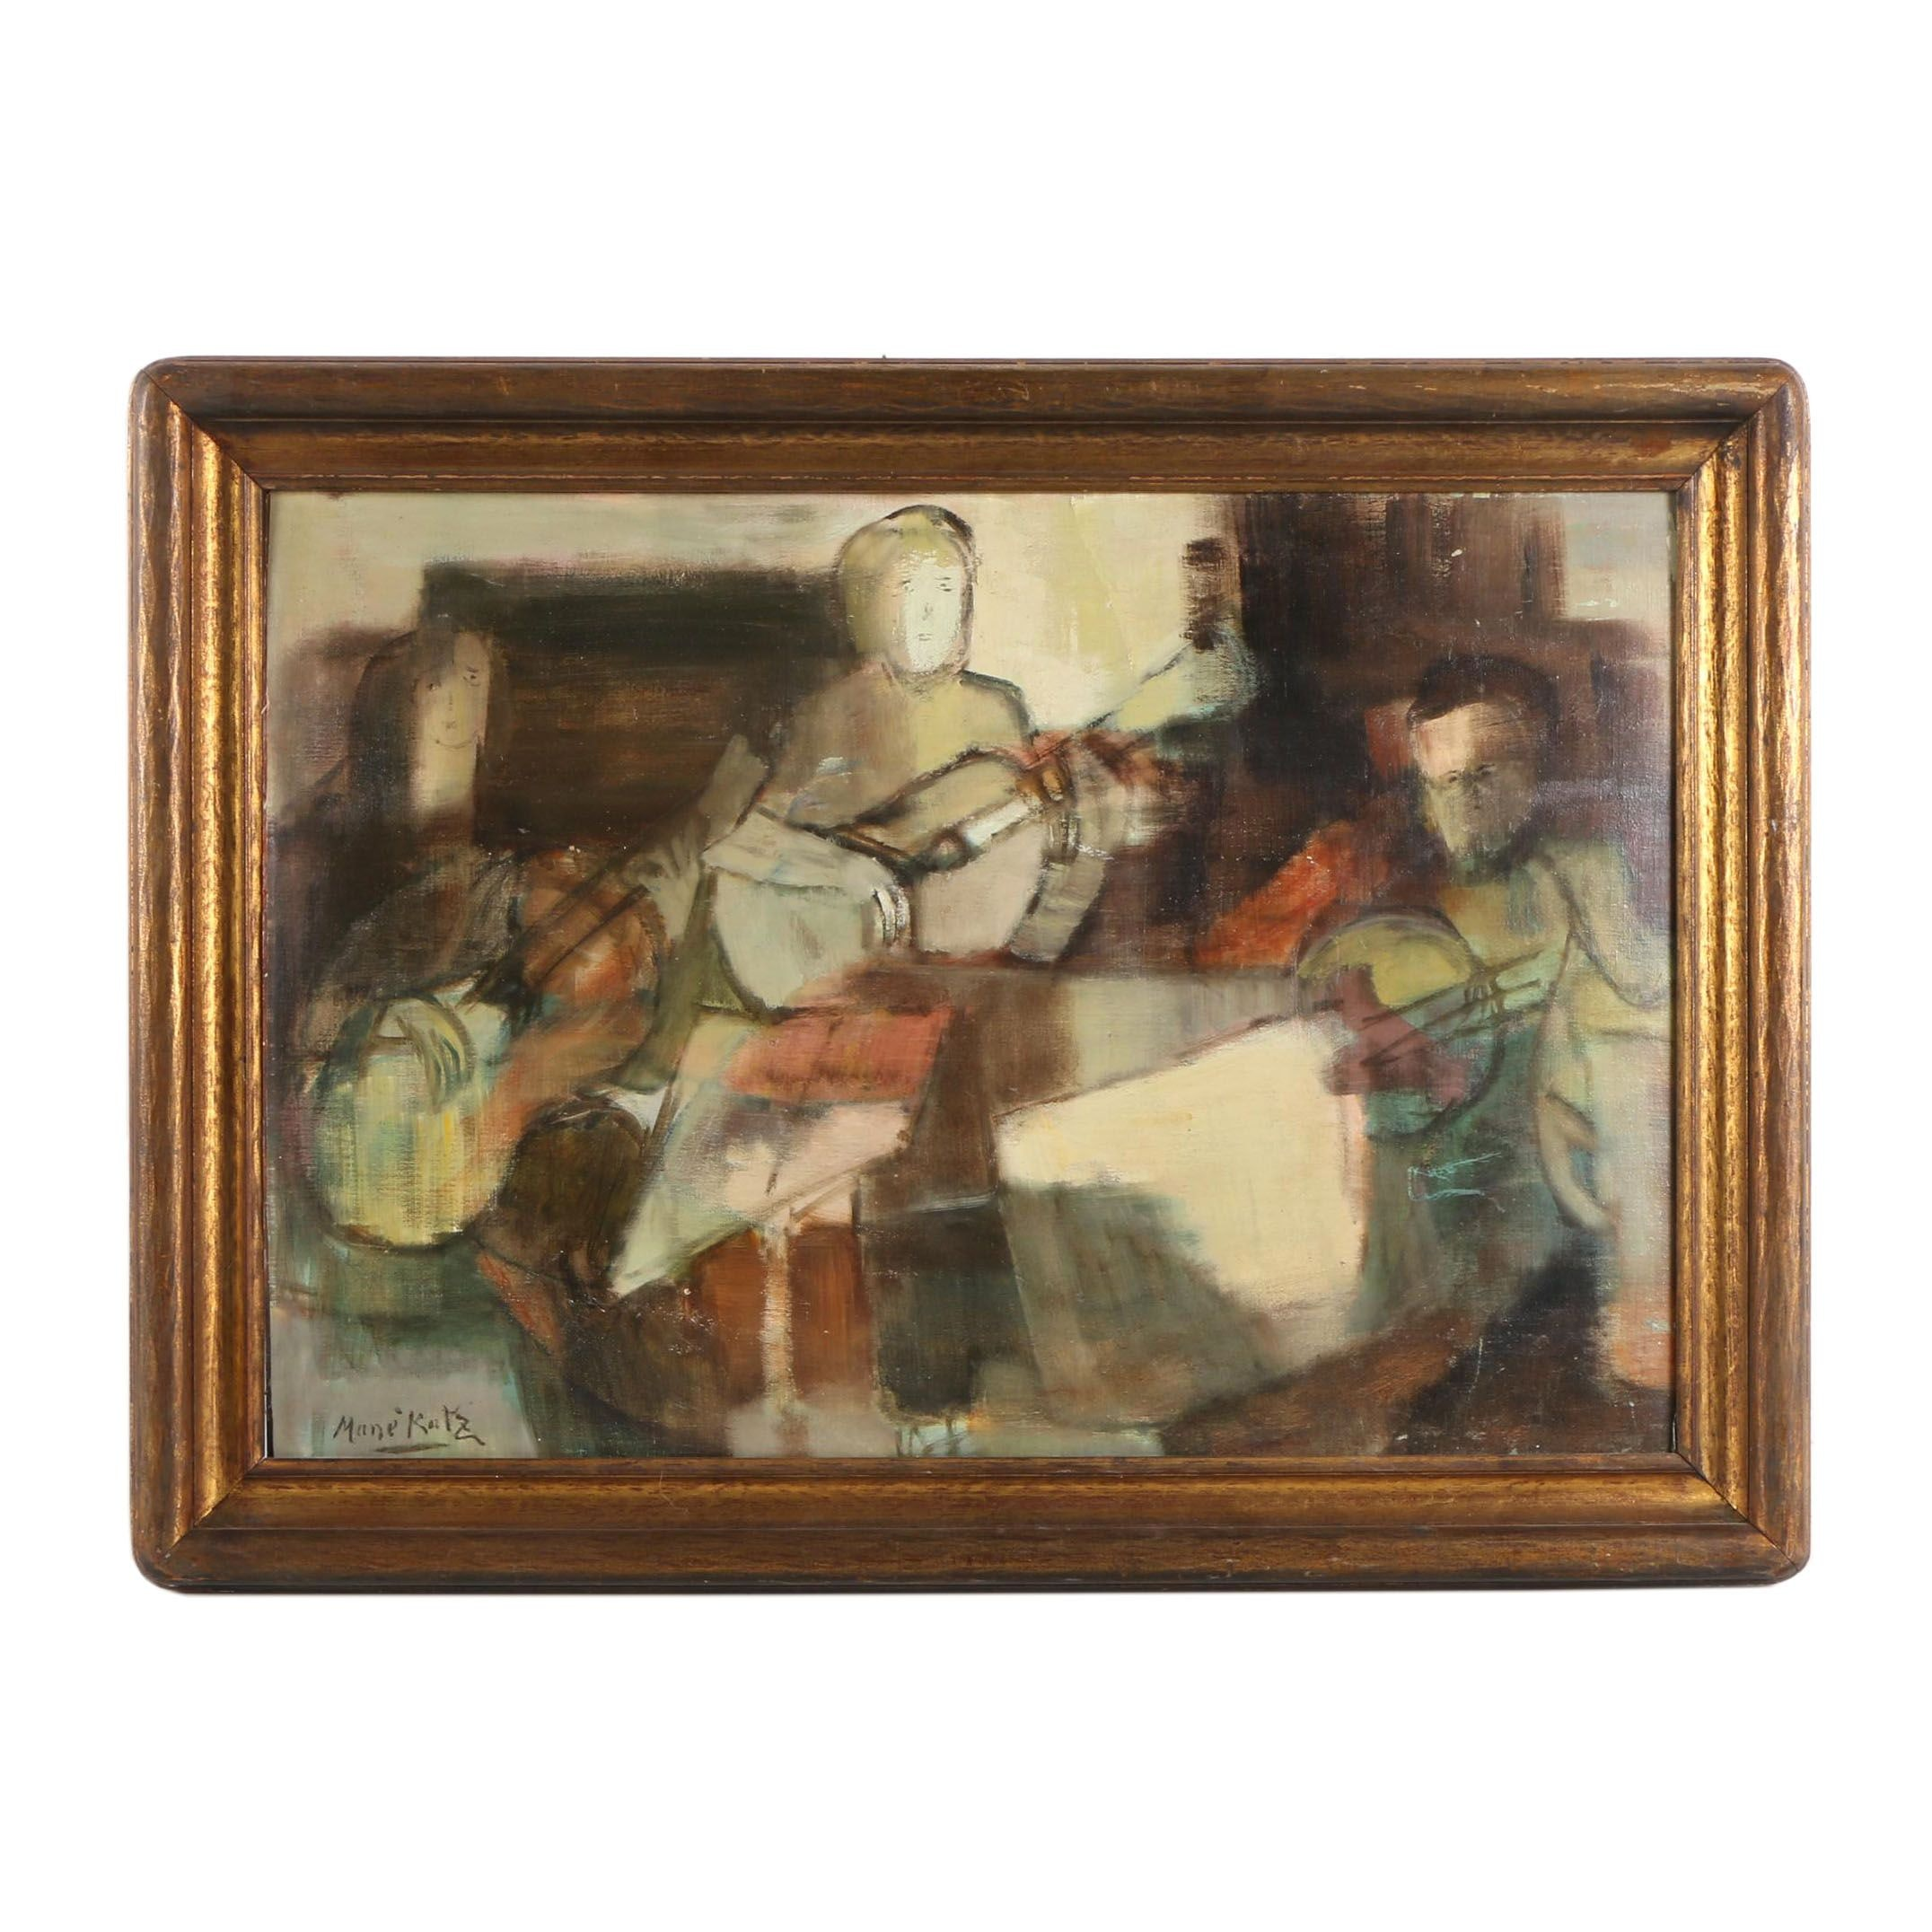 Oil Painting on Canvas In the Manner of Mané-Katz of Musicians